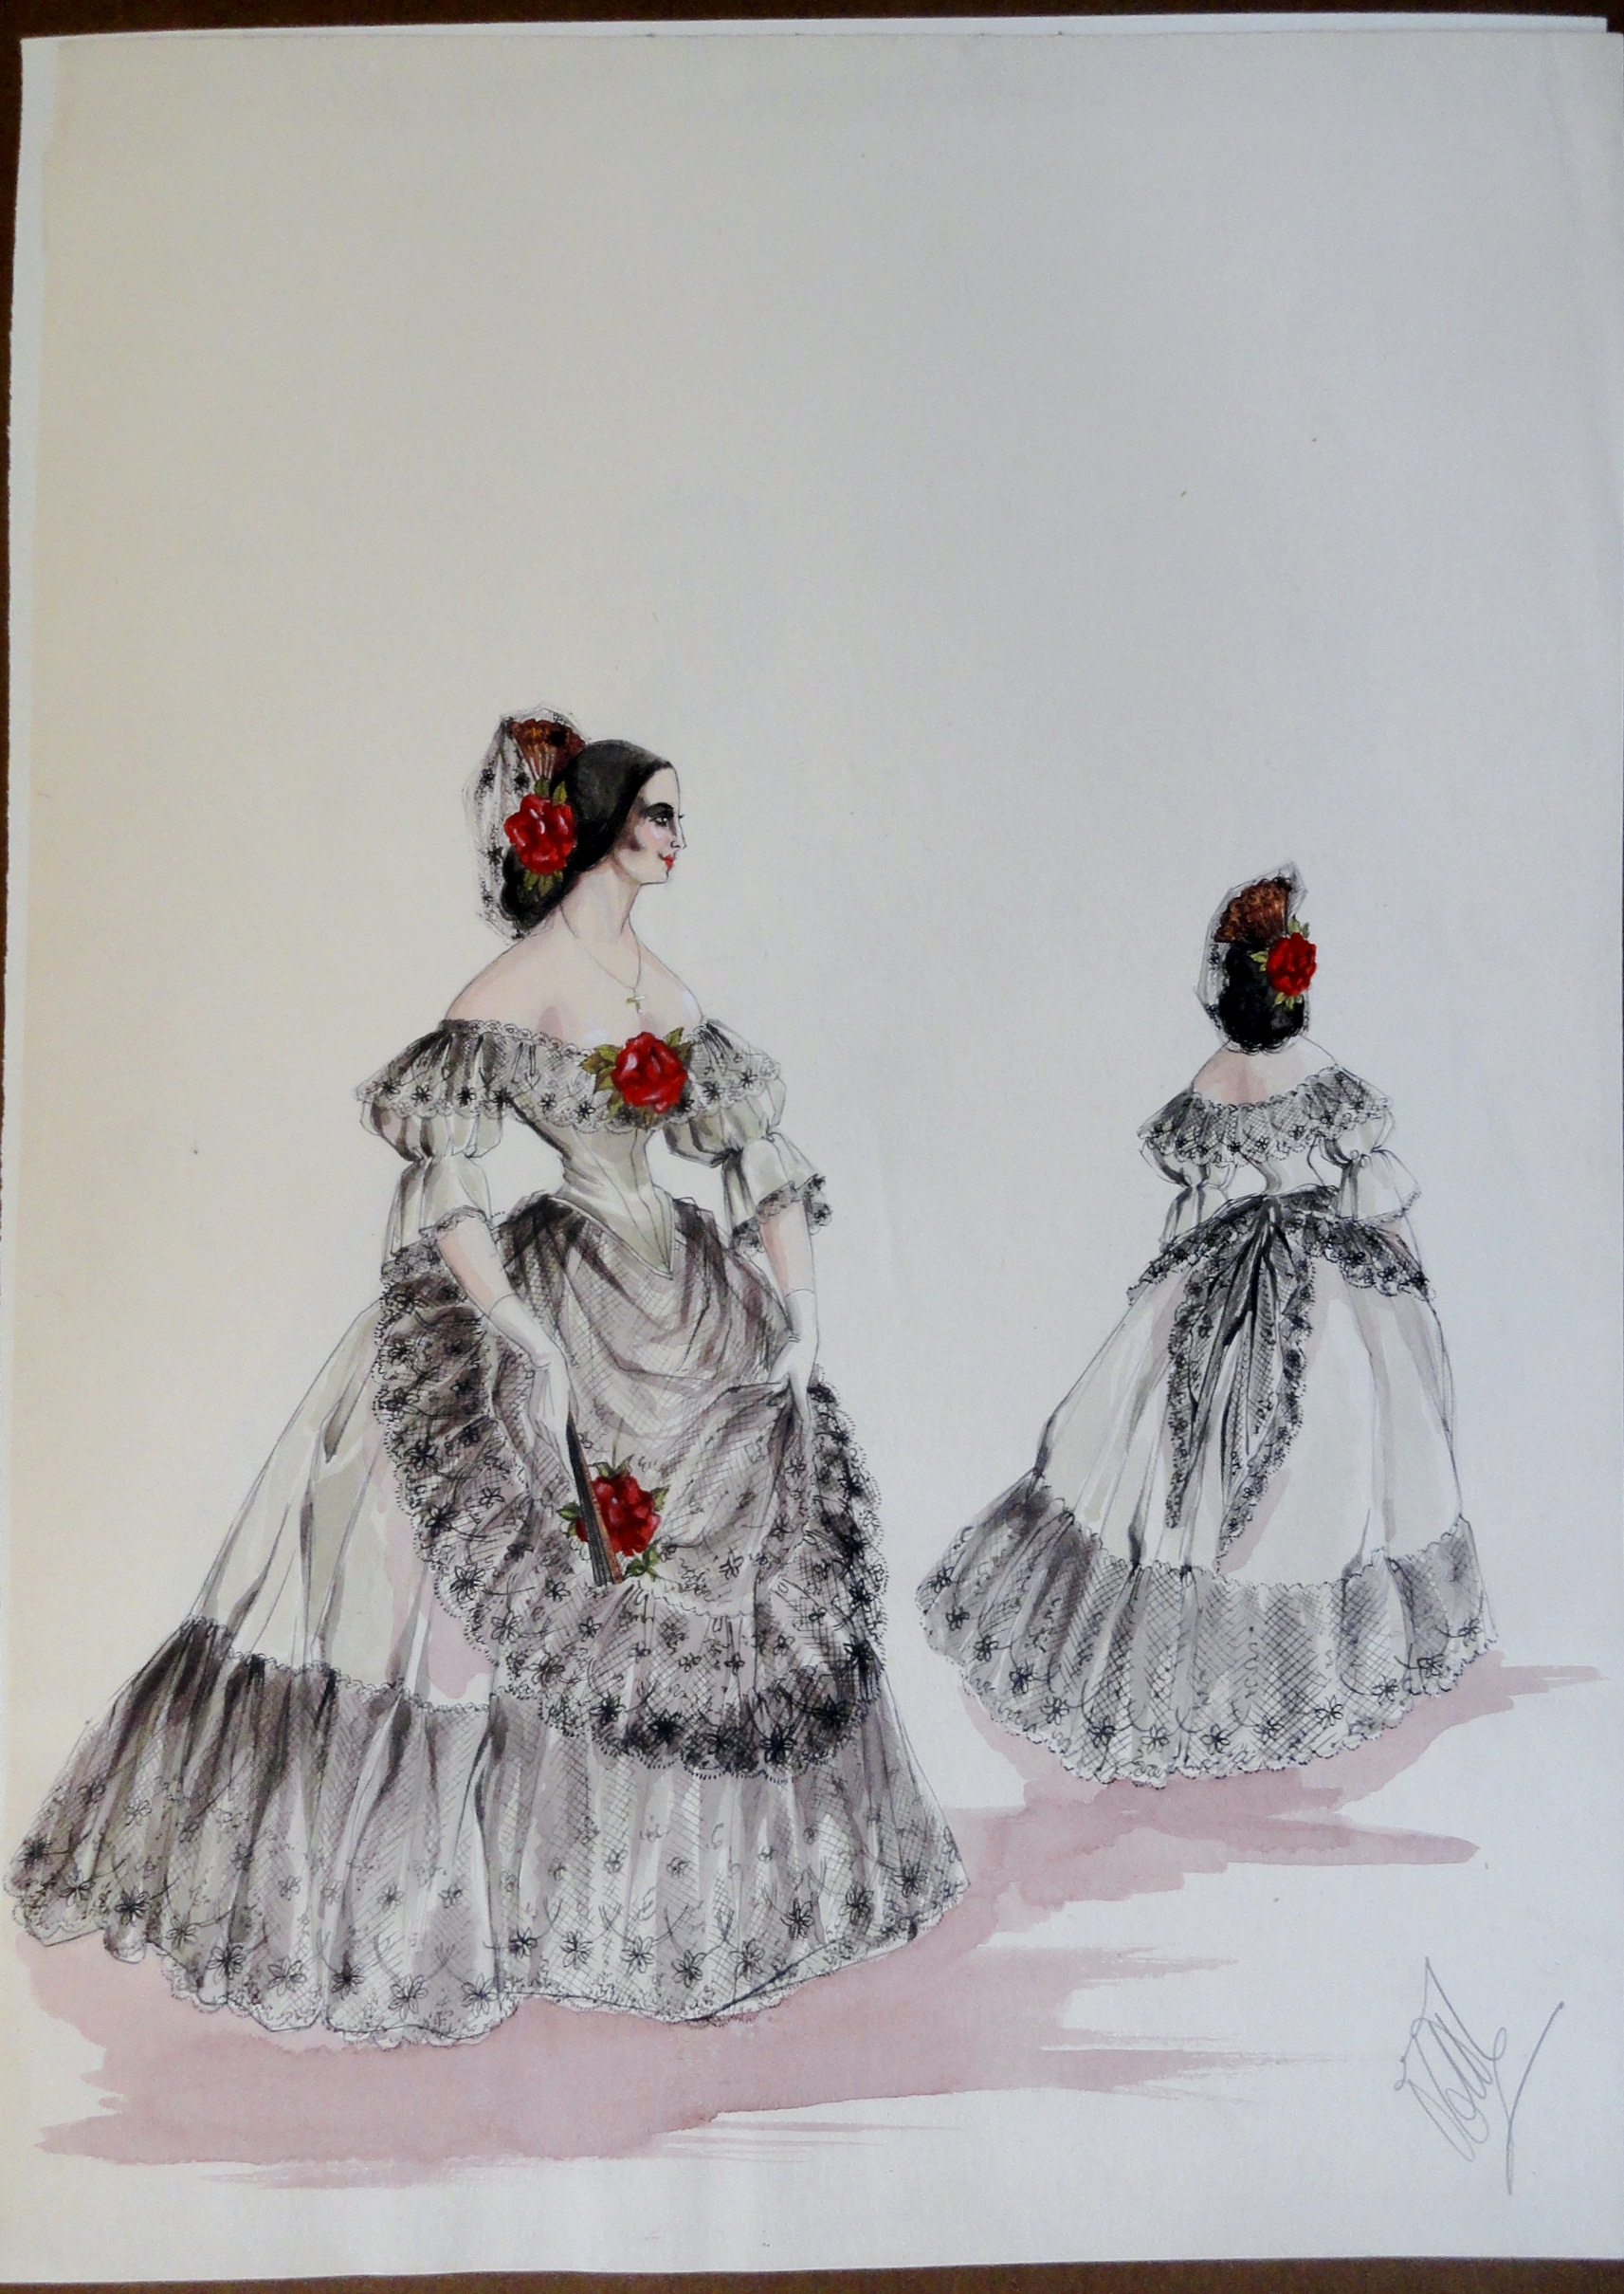 Rachel Felix white Spanish gown with red flowers. Pen and Ink and Watercolor painting on paper.  From the Rachel Portfolio by Owen Hyde Clark.